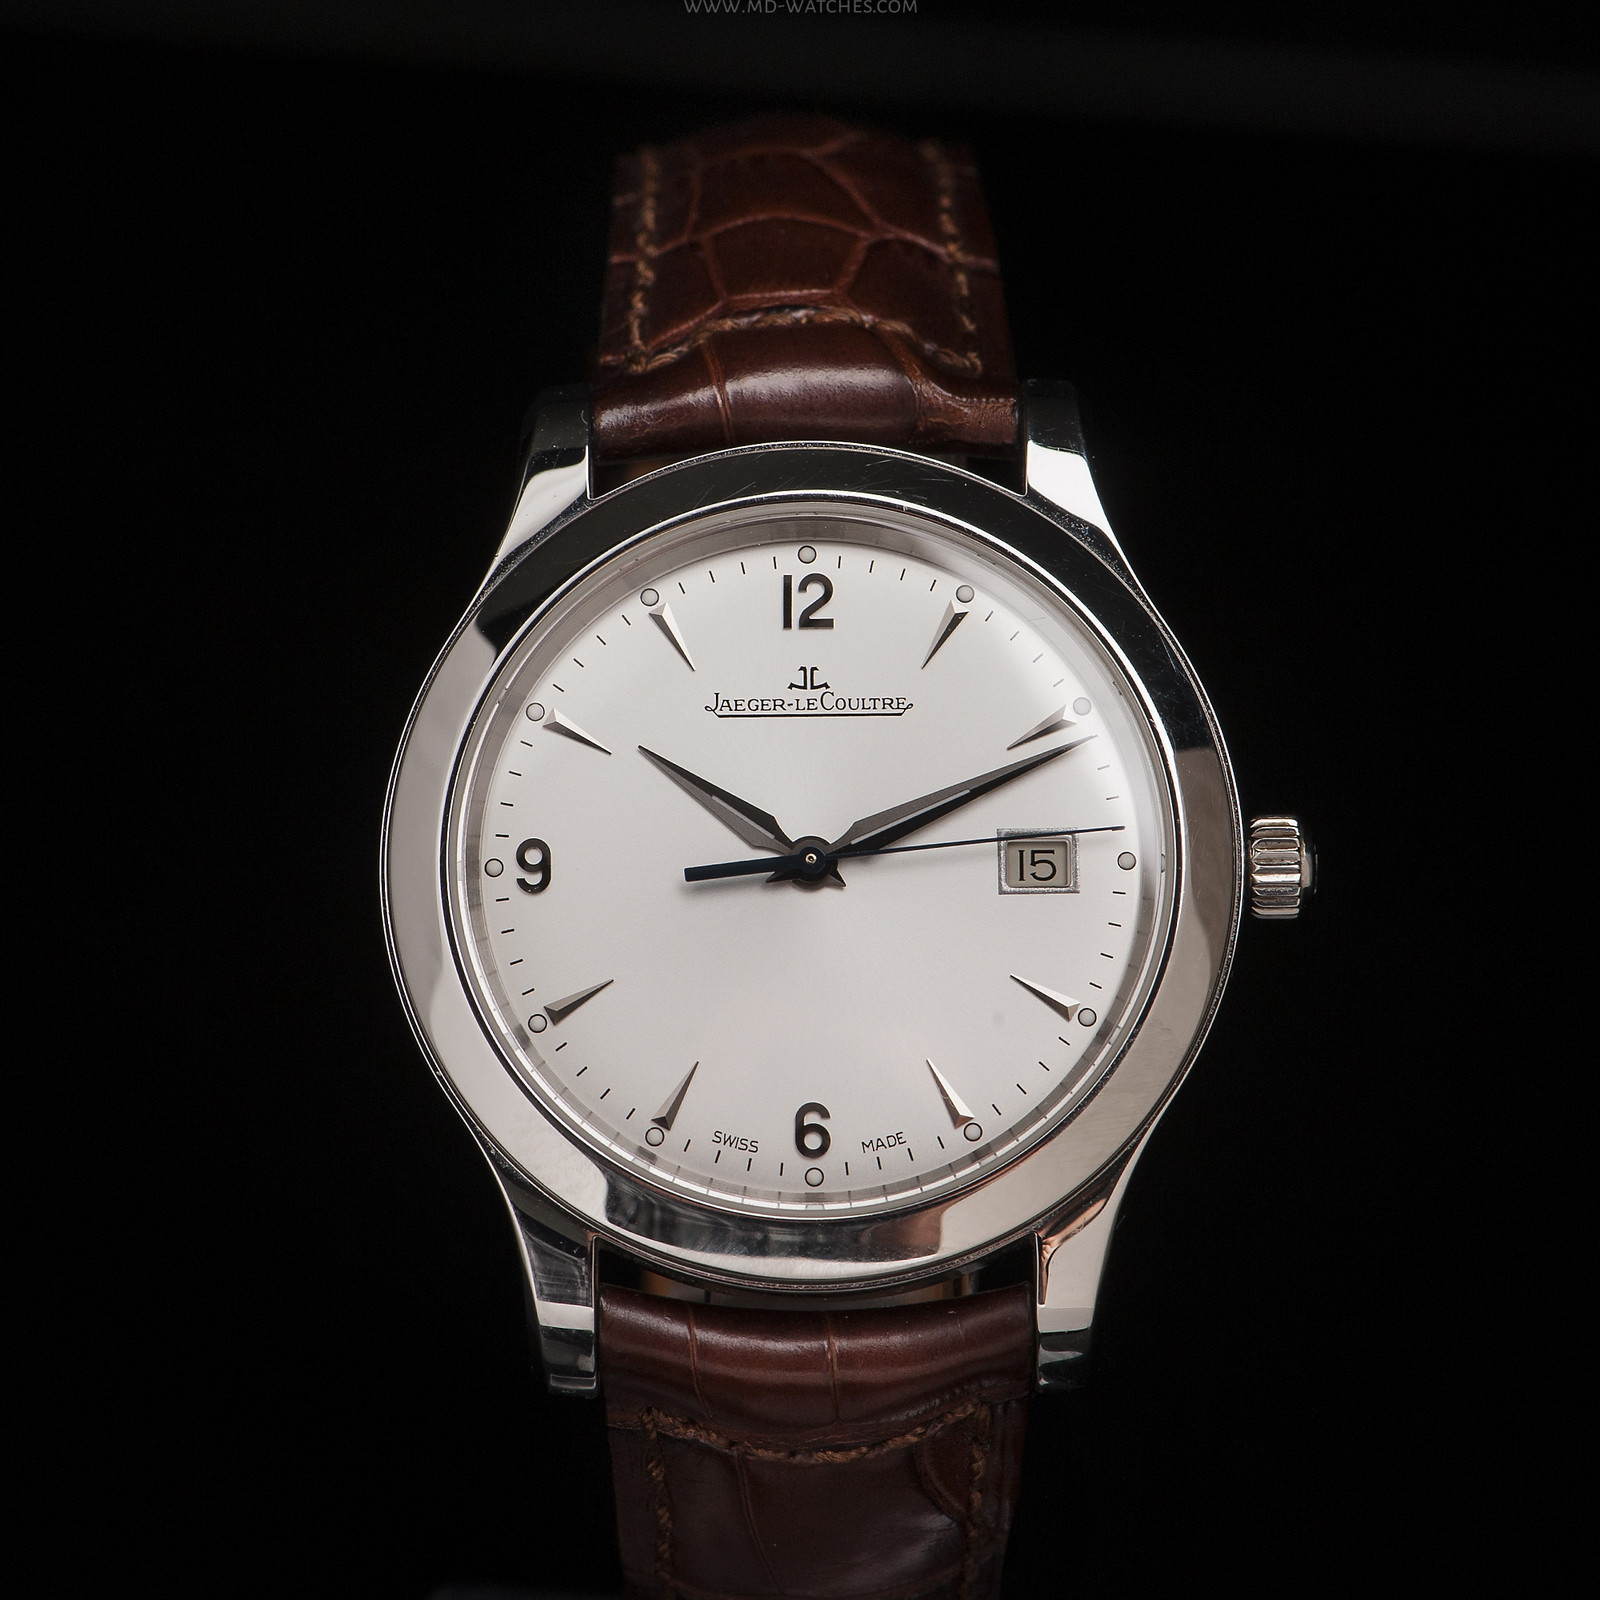 Jaeger lecoultre master control date ref 147 s 40mm md watches for Lecoultre watches